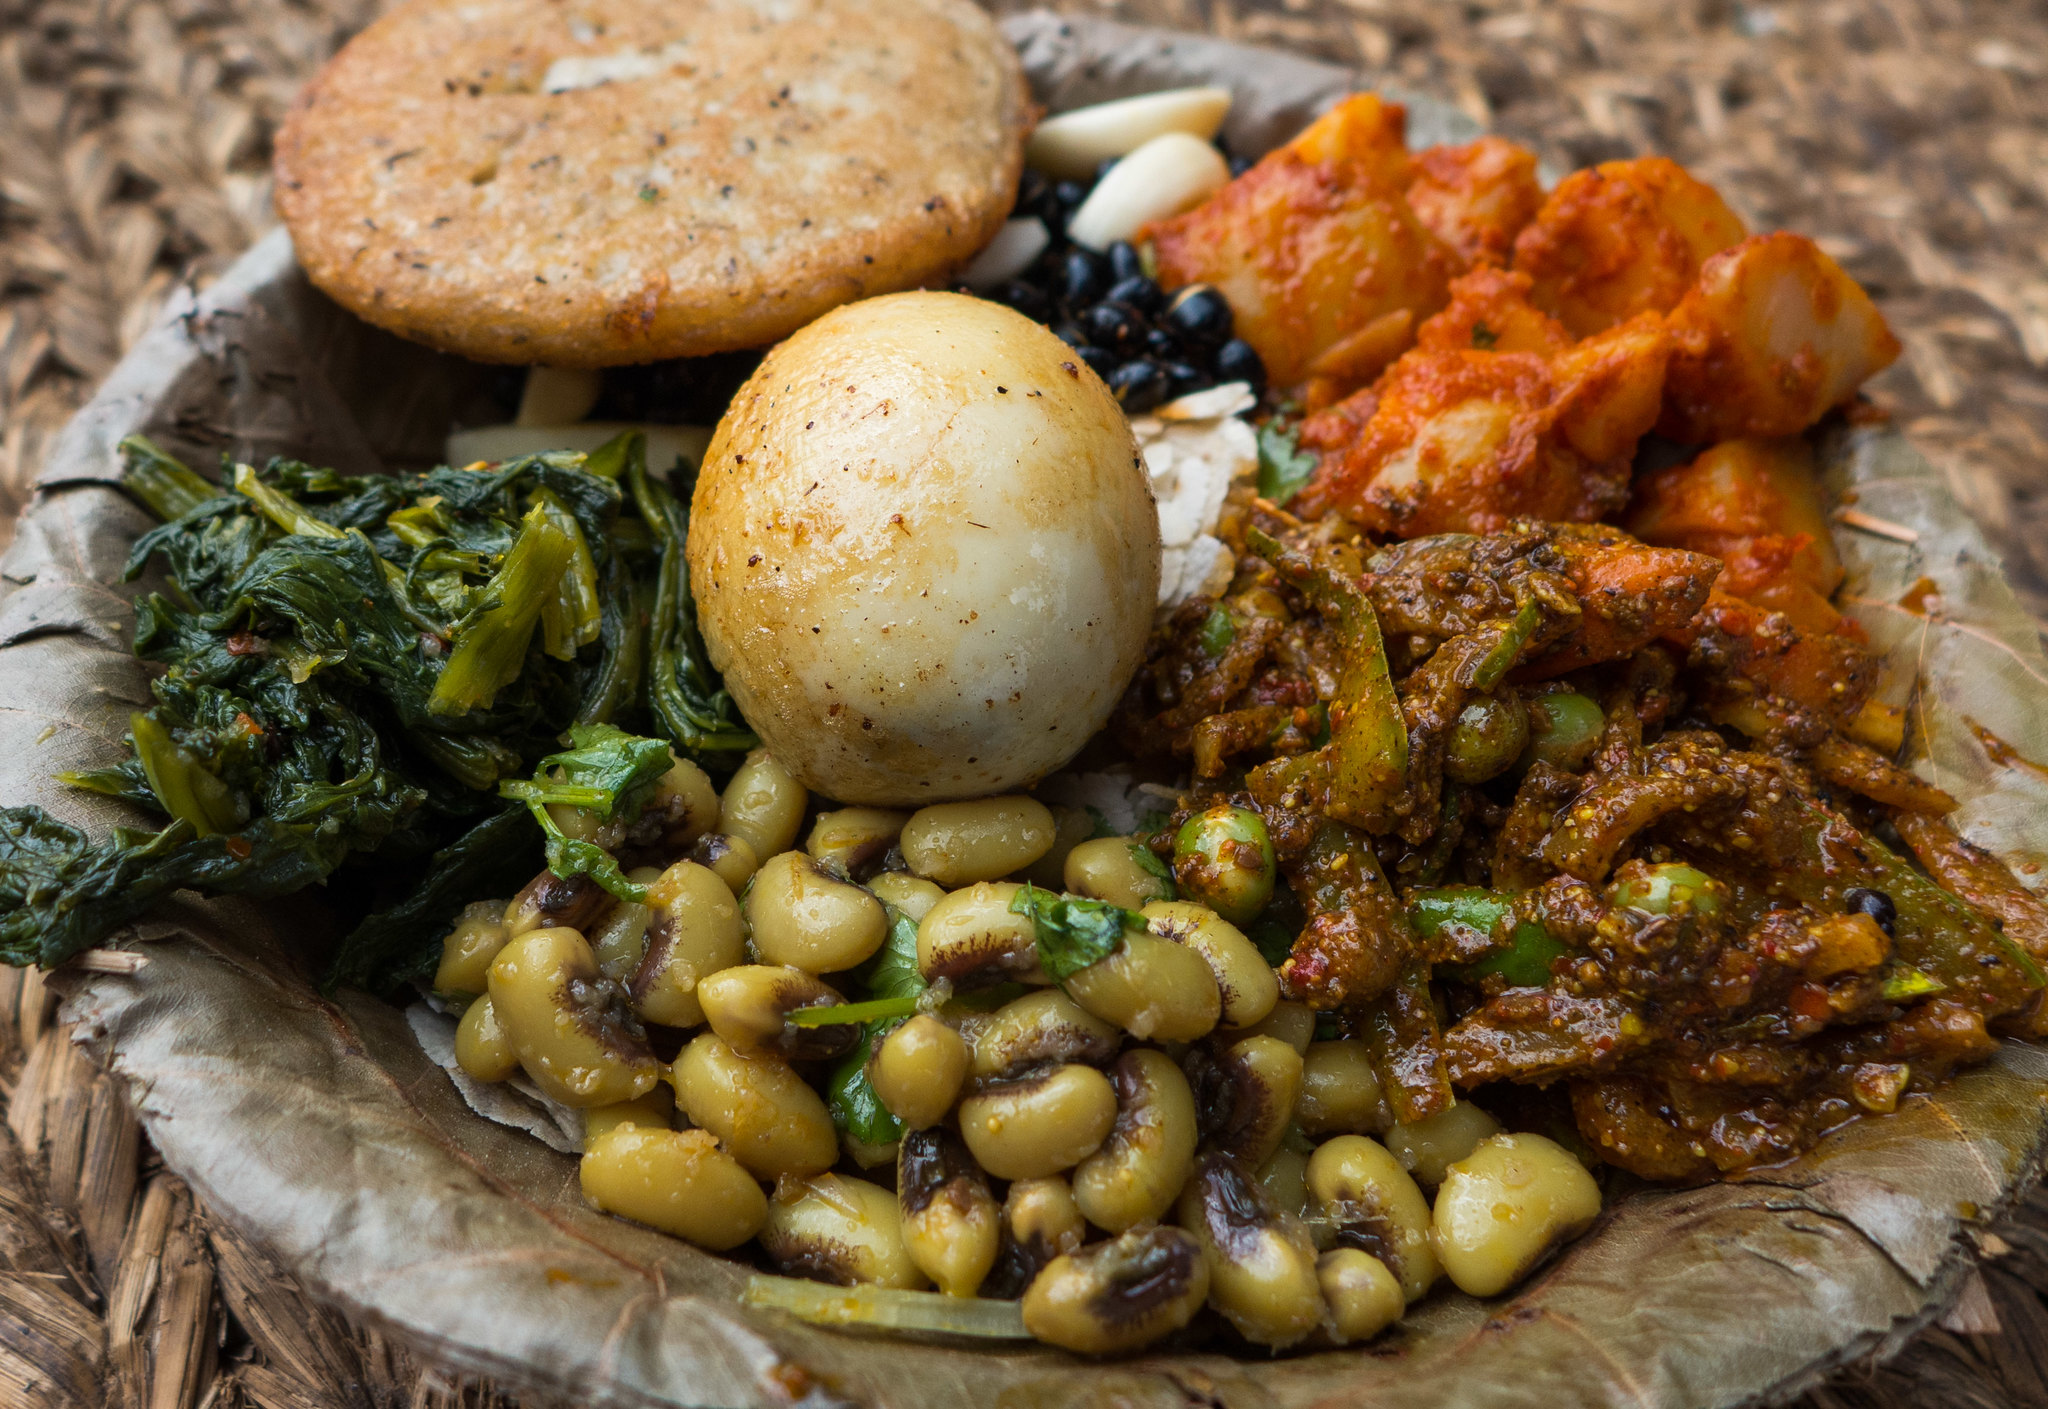 A traditional Newari meal. Photo: Sharada Prasad CS/Flickr